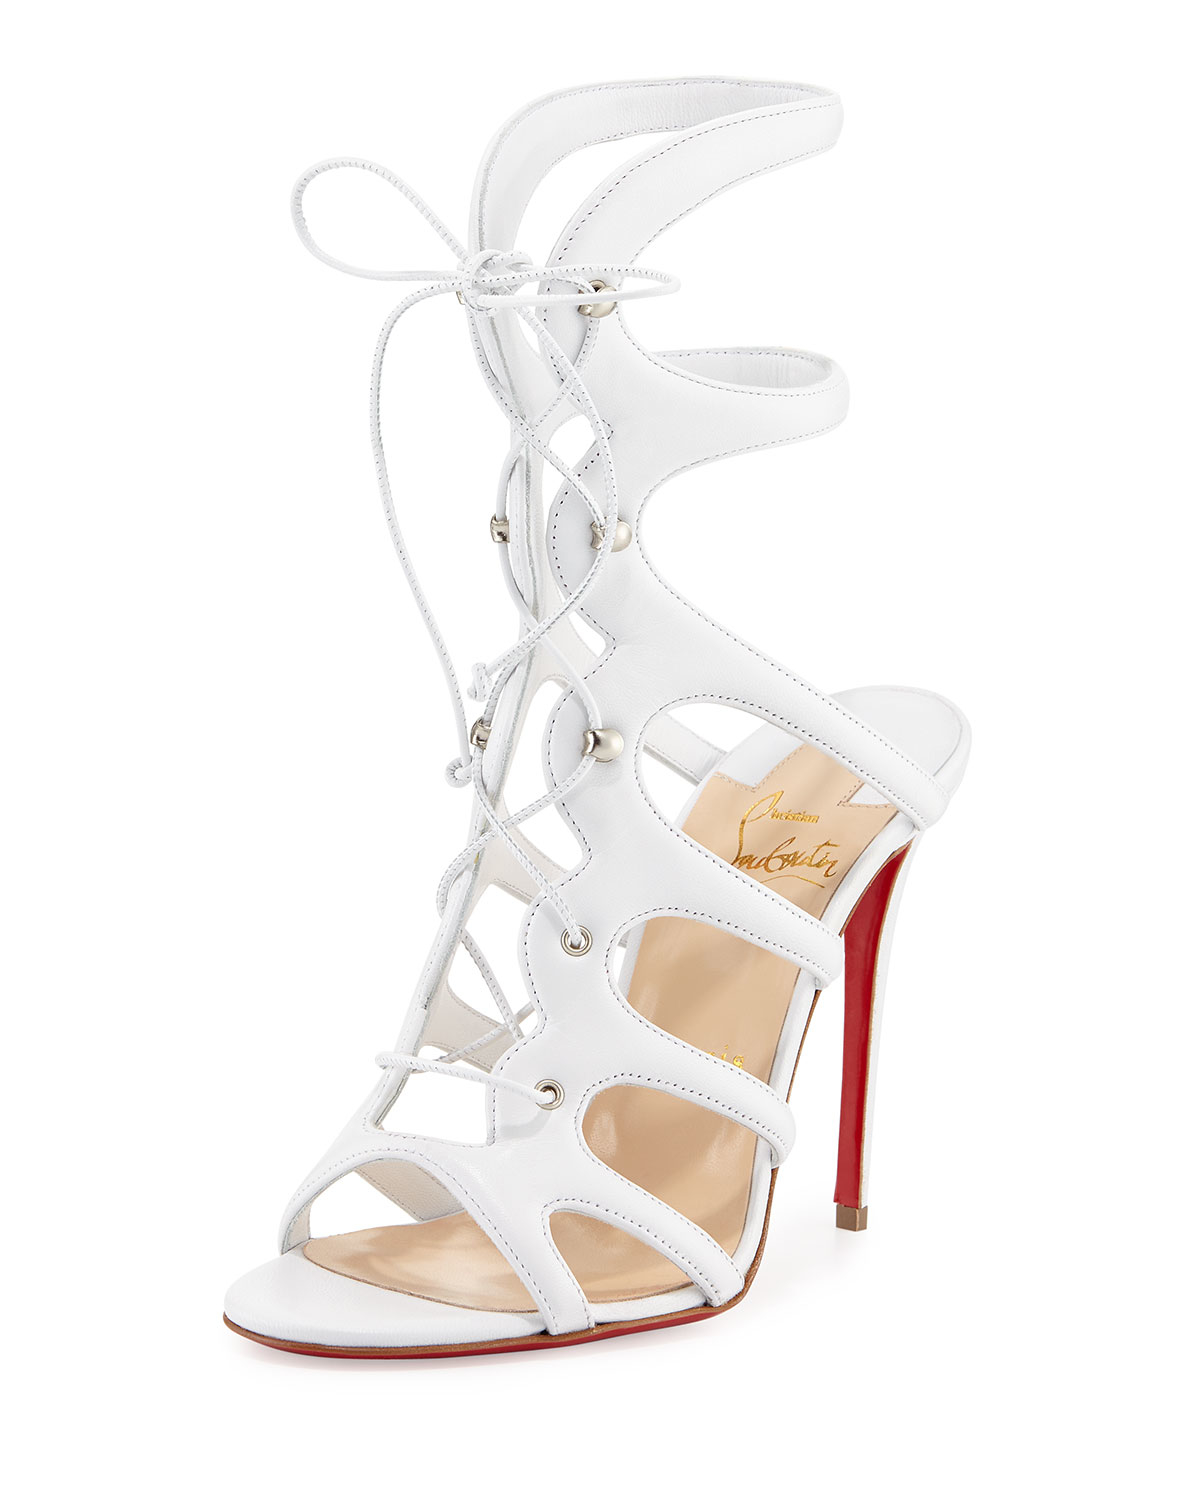 462ecbee1d2d Lyst - Christian Louboutin Amazoula Lace-up Red Sole Sandal in White